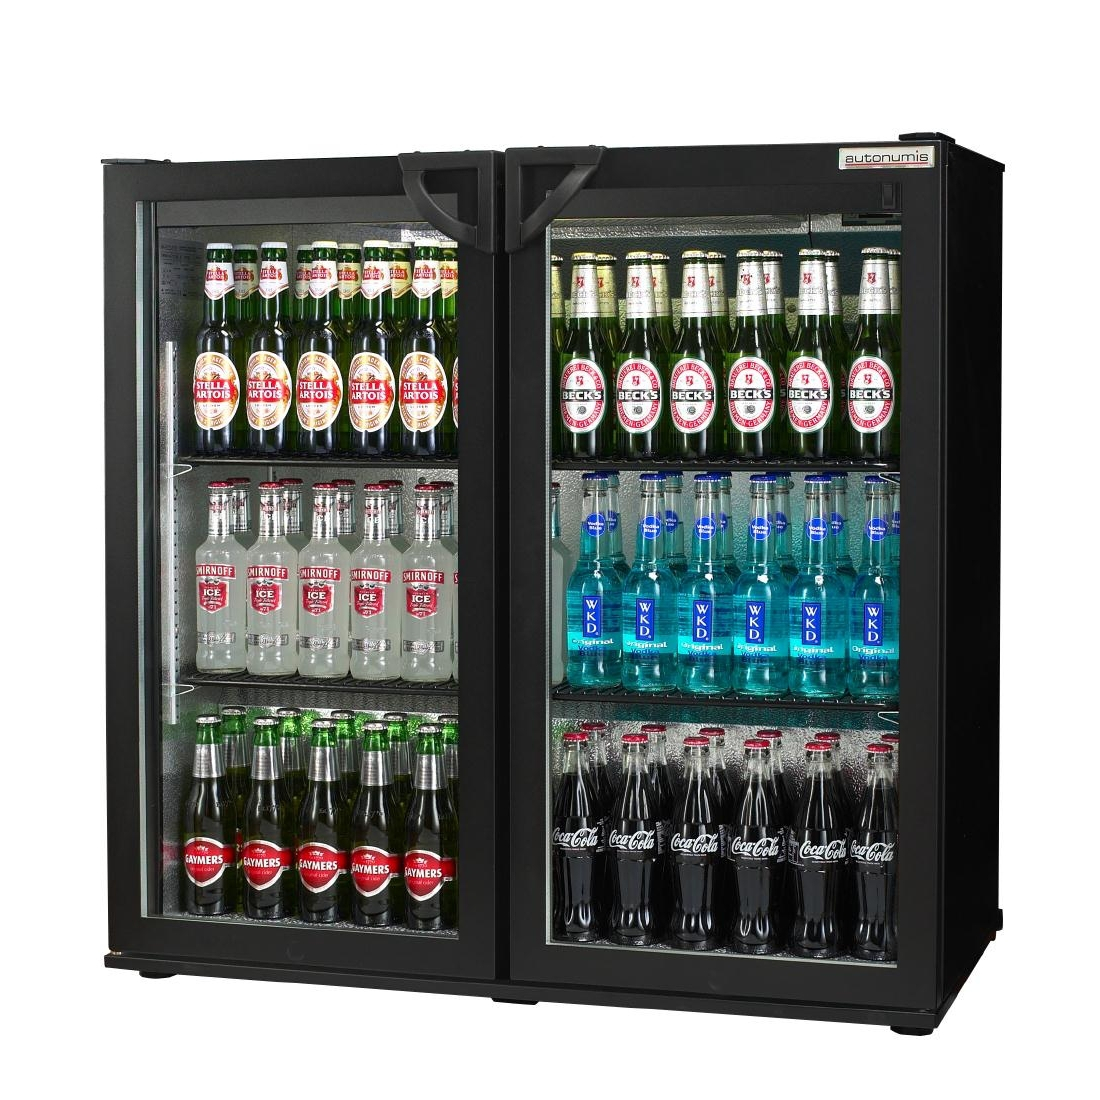 Autonumis Popular Double Hinged Door Maxi Back Bar Cooler Black A21011